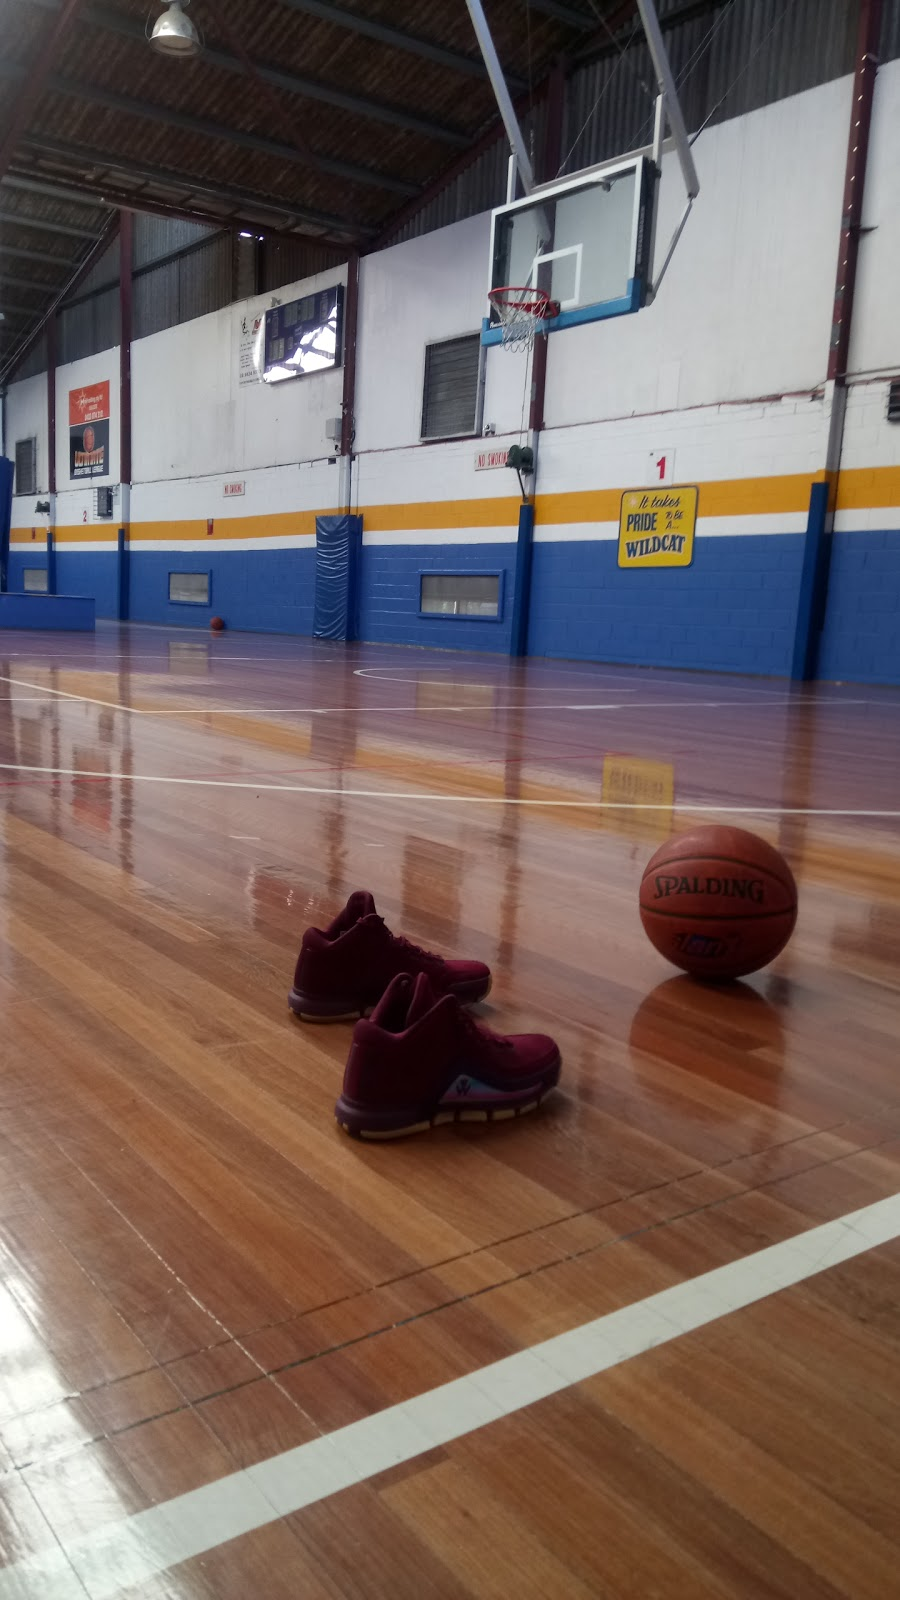 Auburn Basketball Centre Stadium Church St Lidcombe Nsw